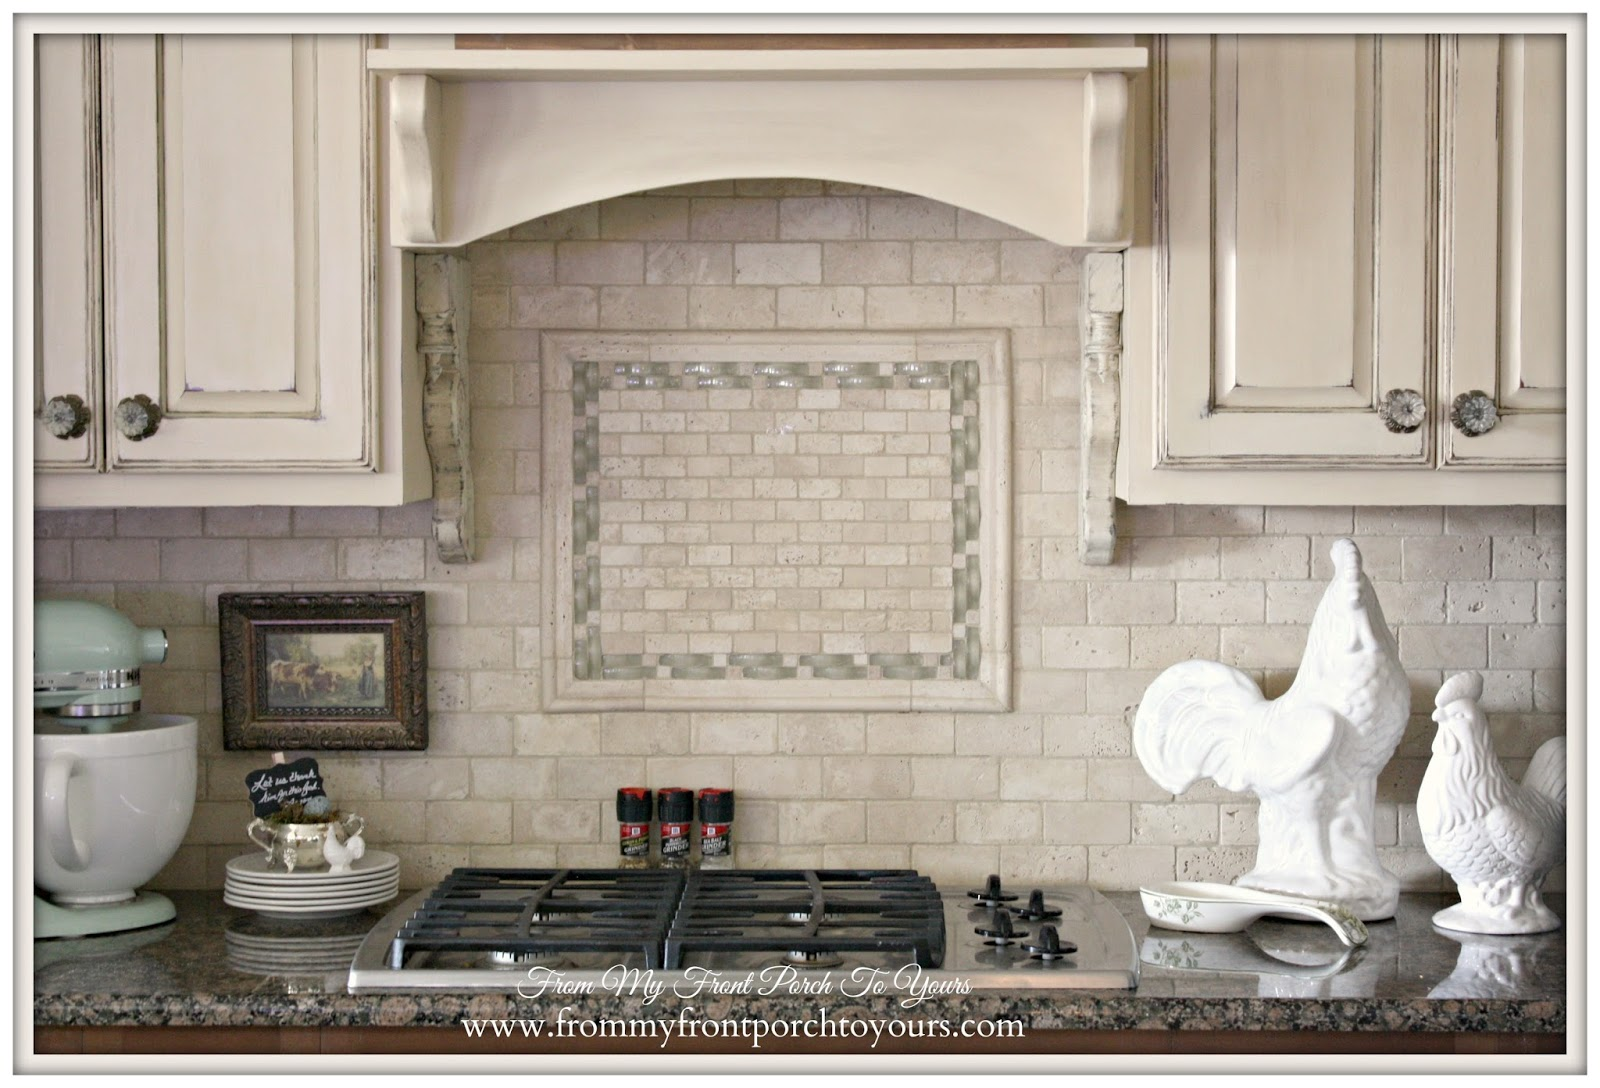 Travertine Tile Backsplash-French Farmhouse Kitchen- From My Front Porch To Yours